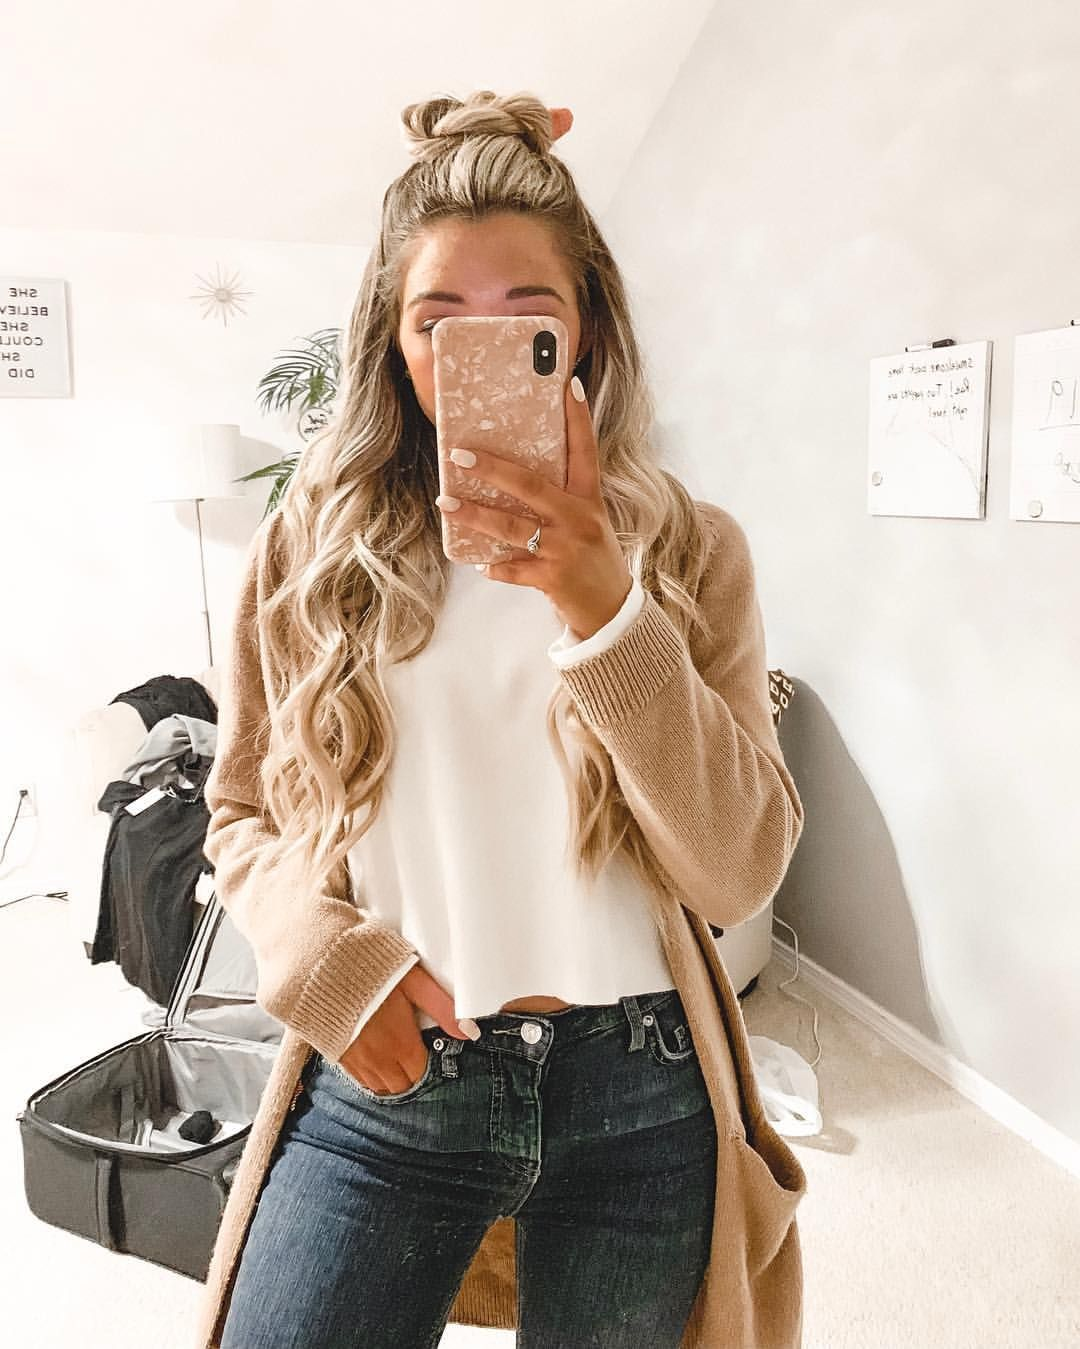 Pin By Alexa Rae On Withalexarae What To Wear Messy Room Love